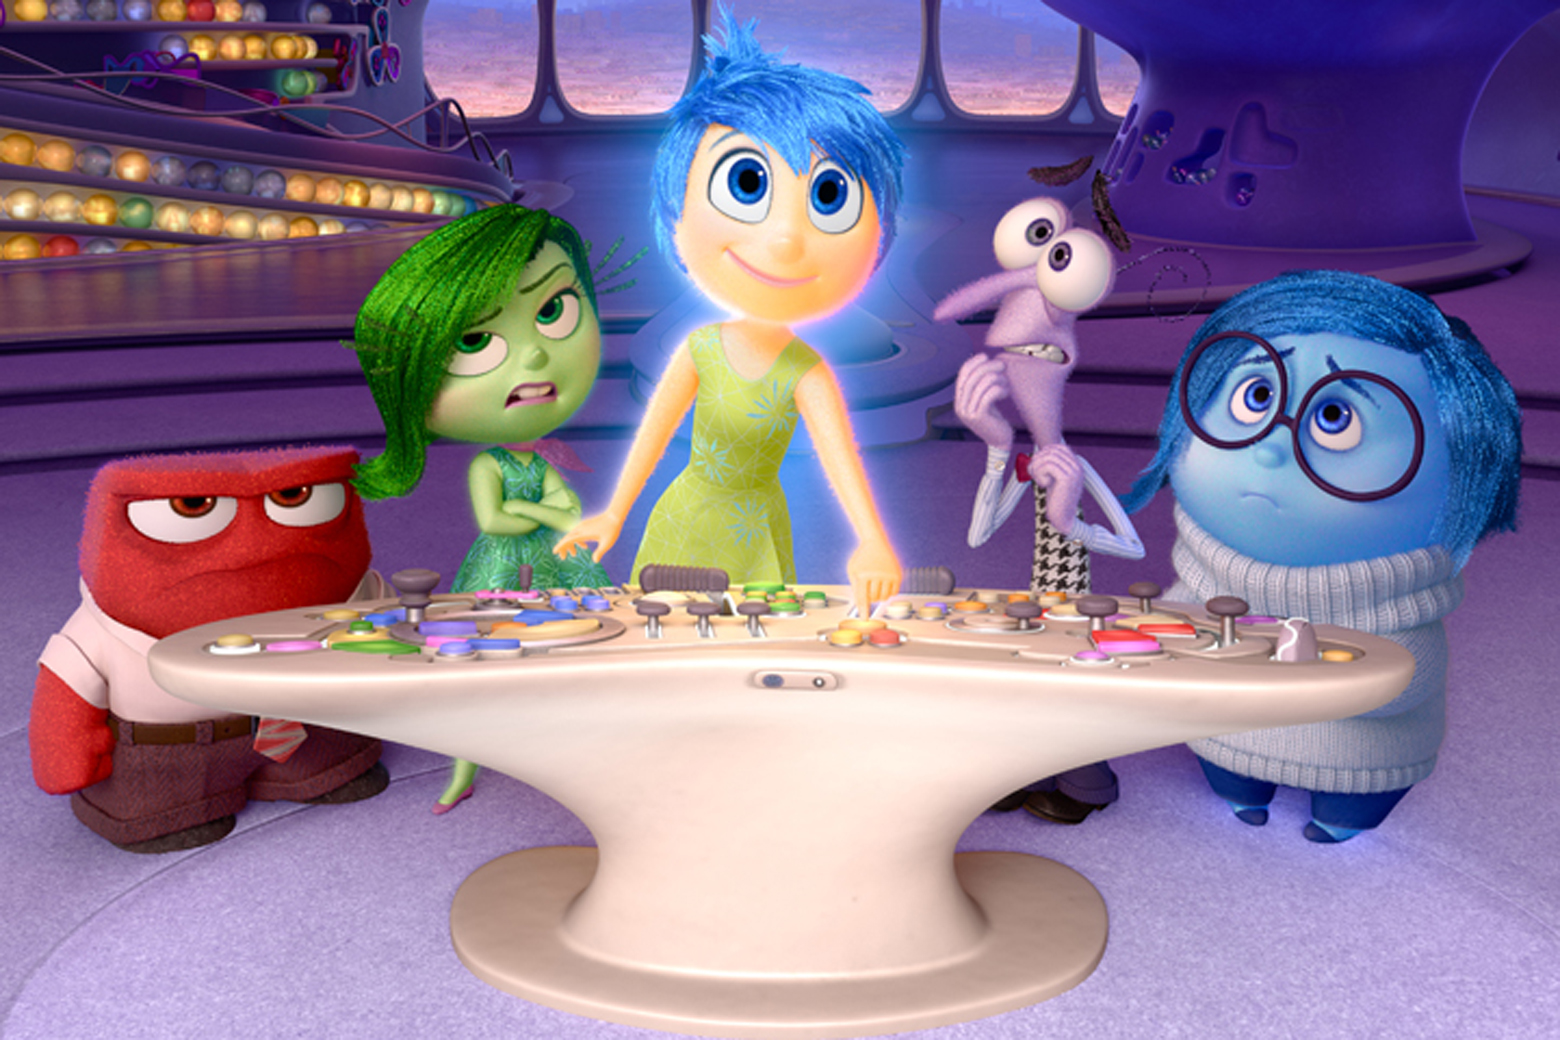 'Inside Out' is a masterful look at our emotions